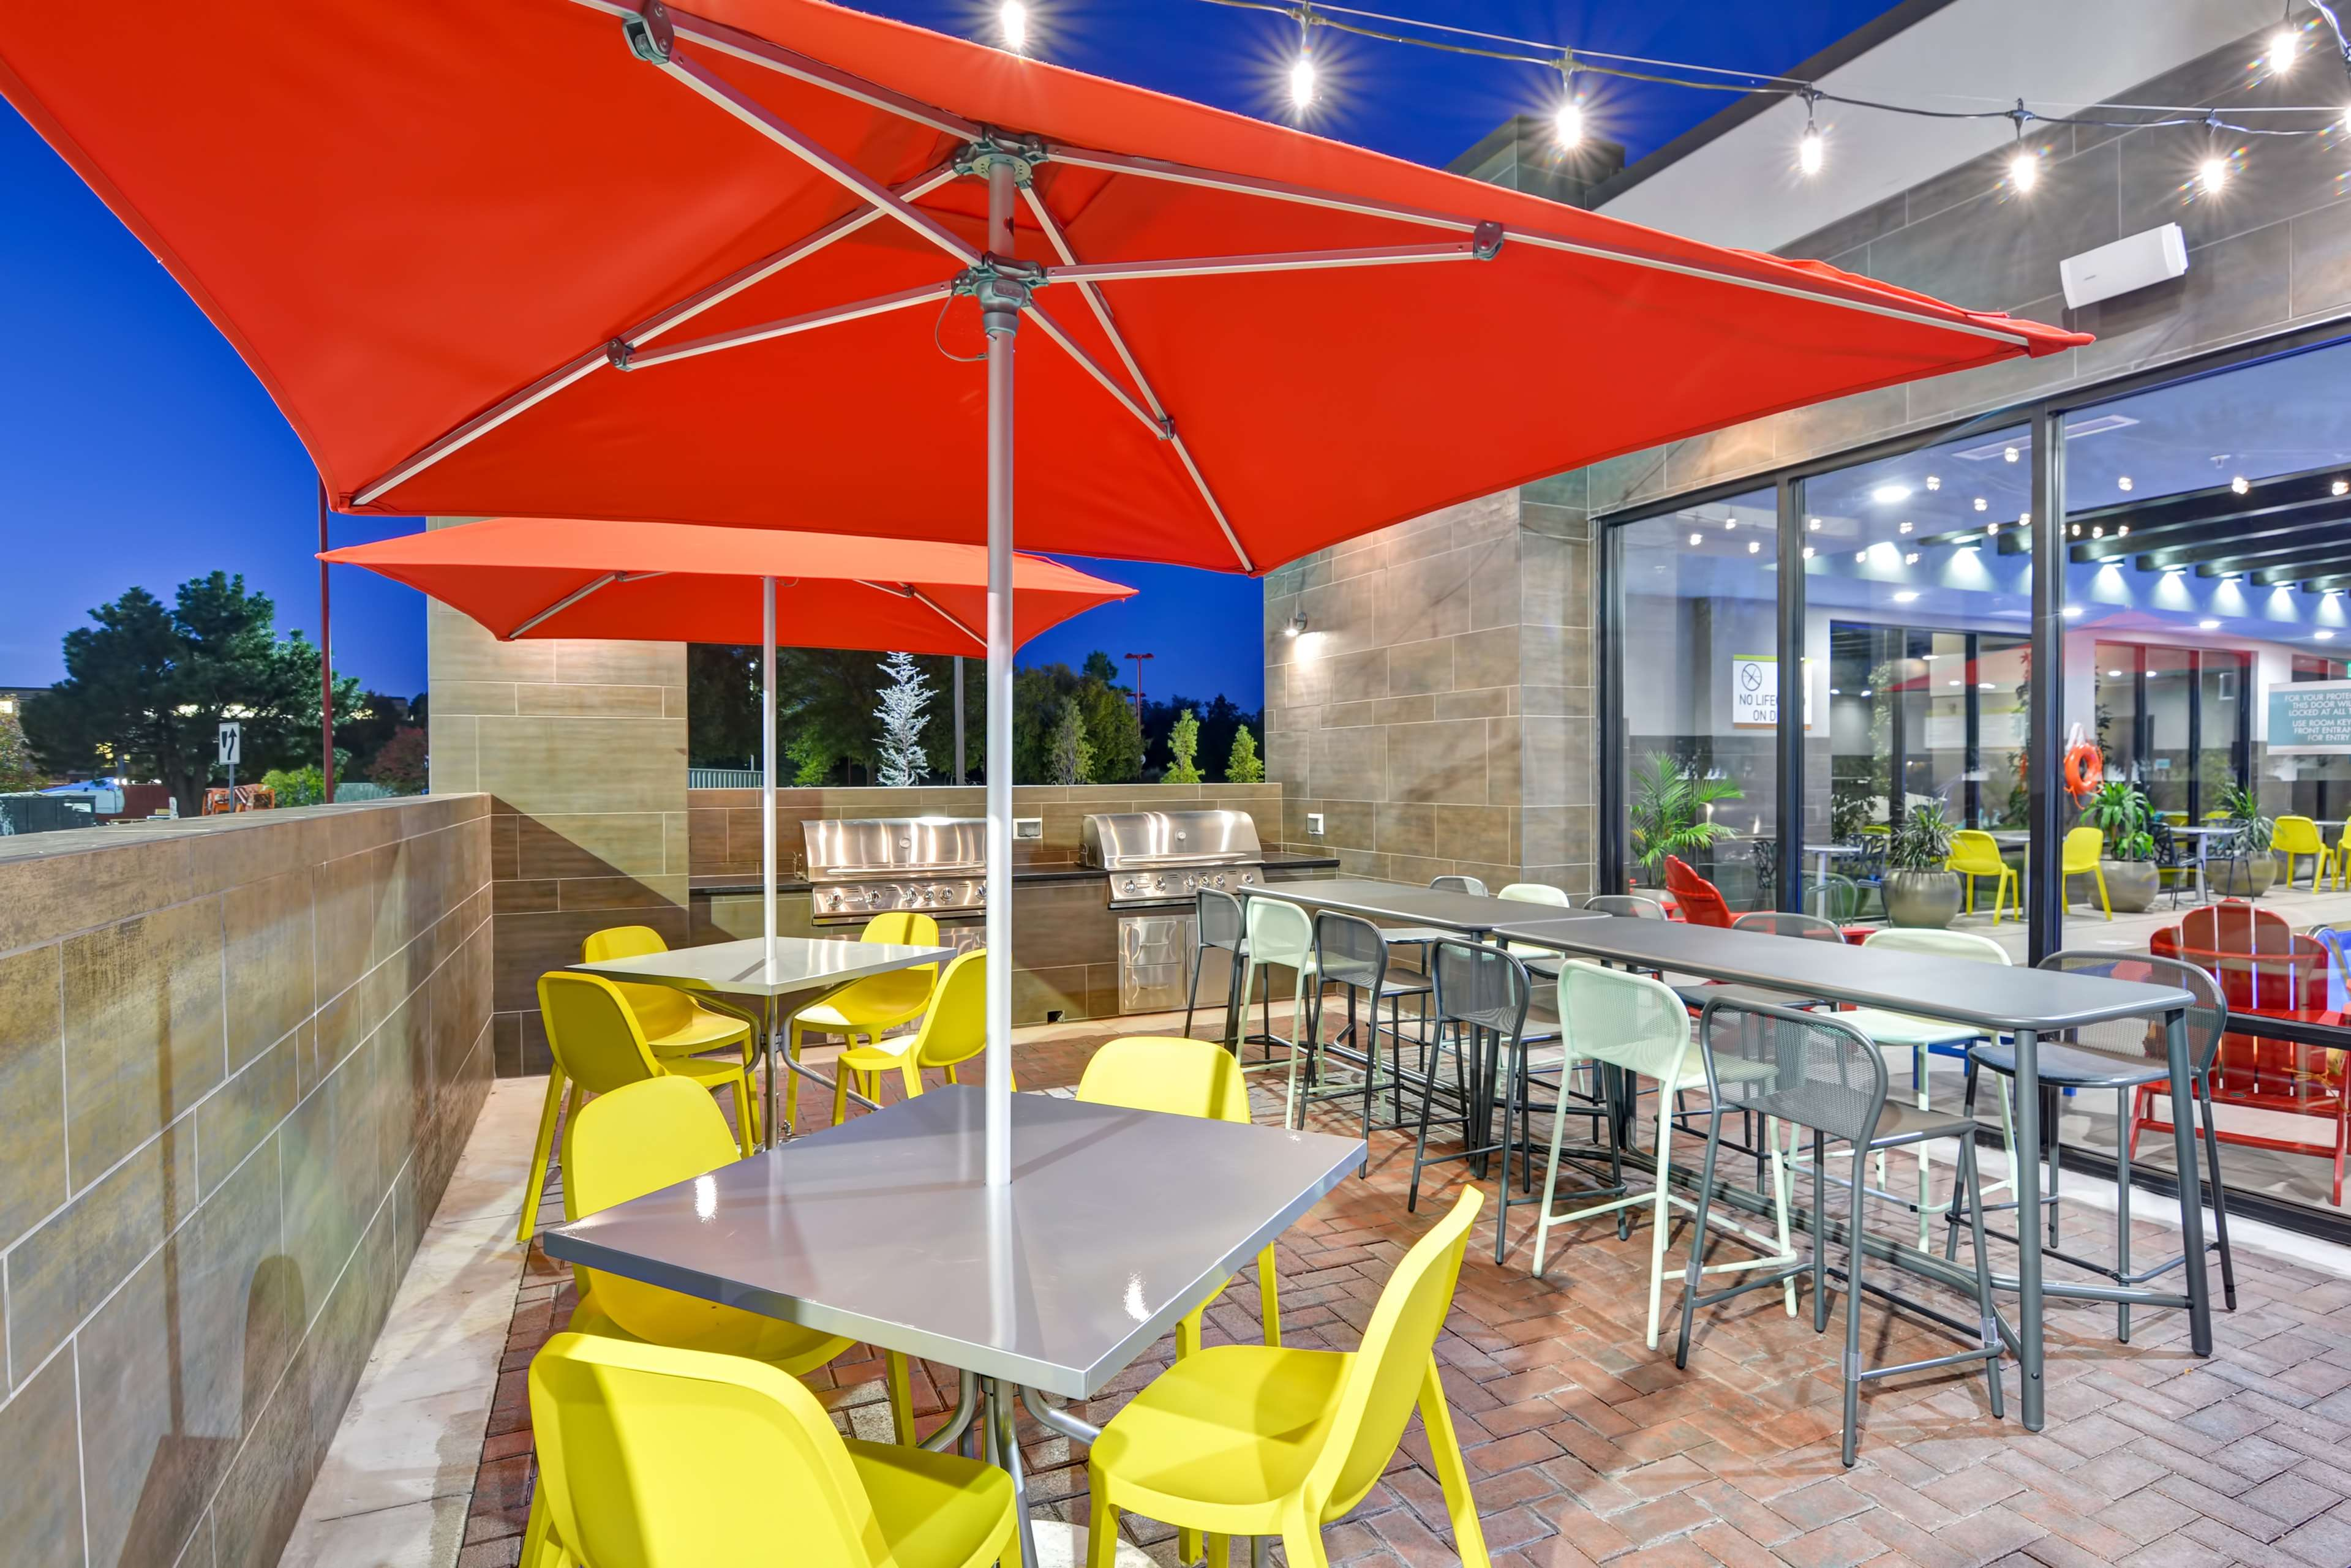 Home2 Suites by Hilton OKC Midwest City Tinker AFB image 3